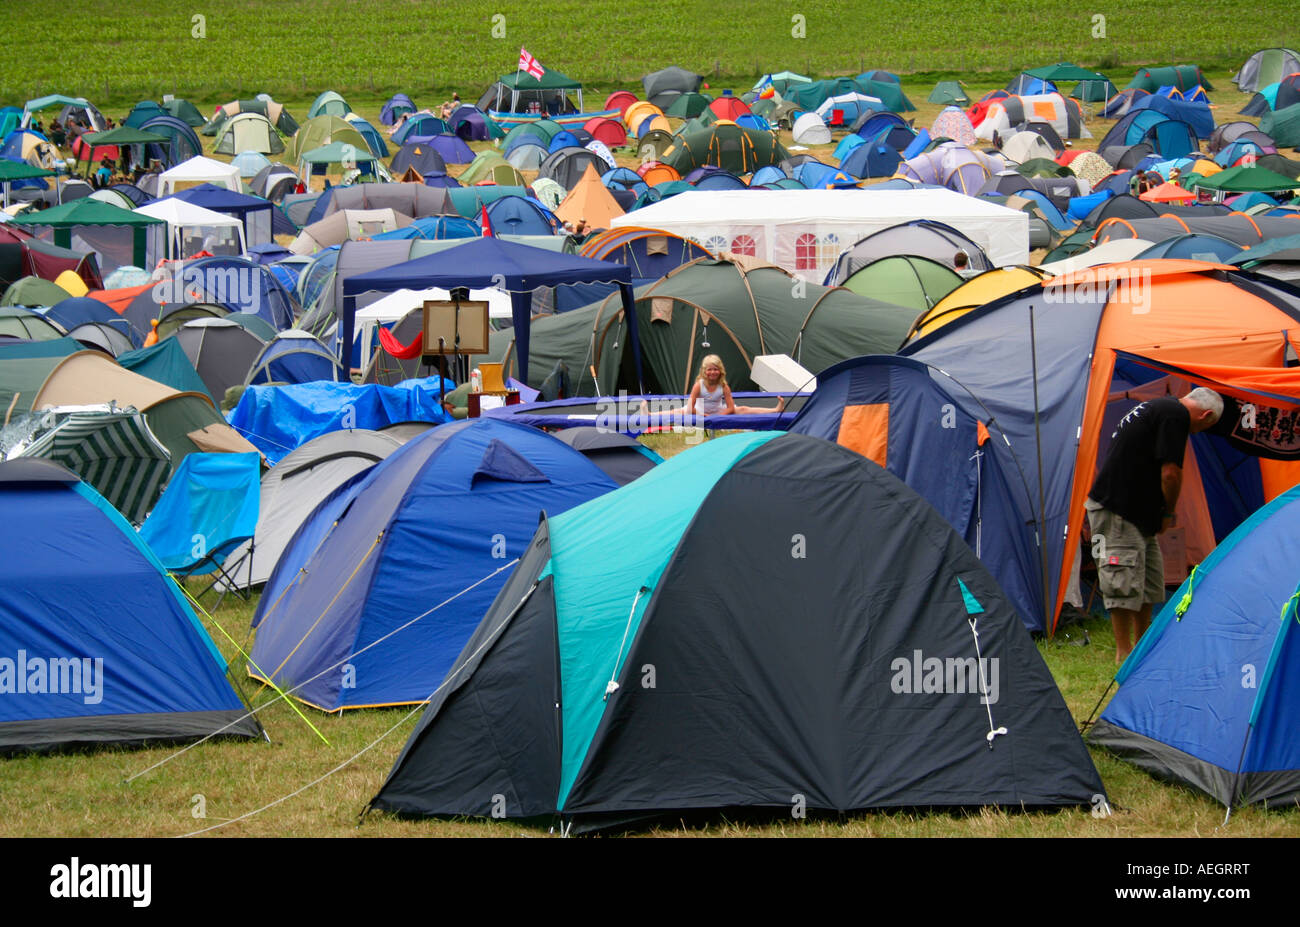 Sea of tents at The big chill music festival Eastnor England - Stock Image & England Camping Tent Summer Event Young Youth Dance Crazy Sleep ...